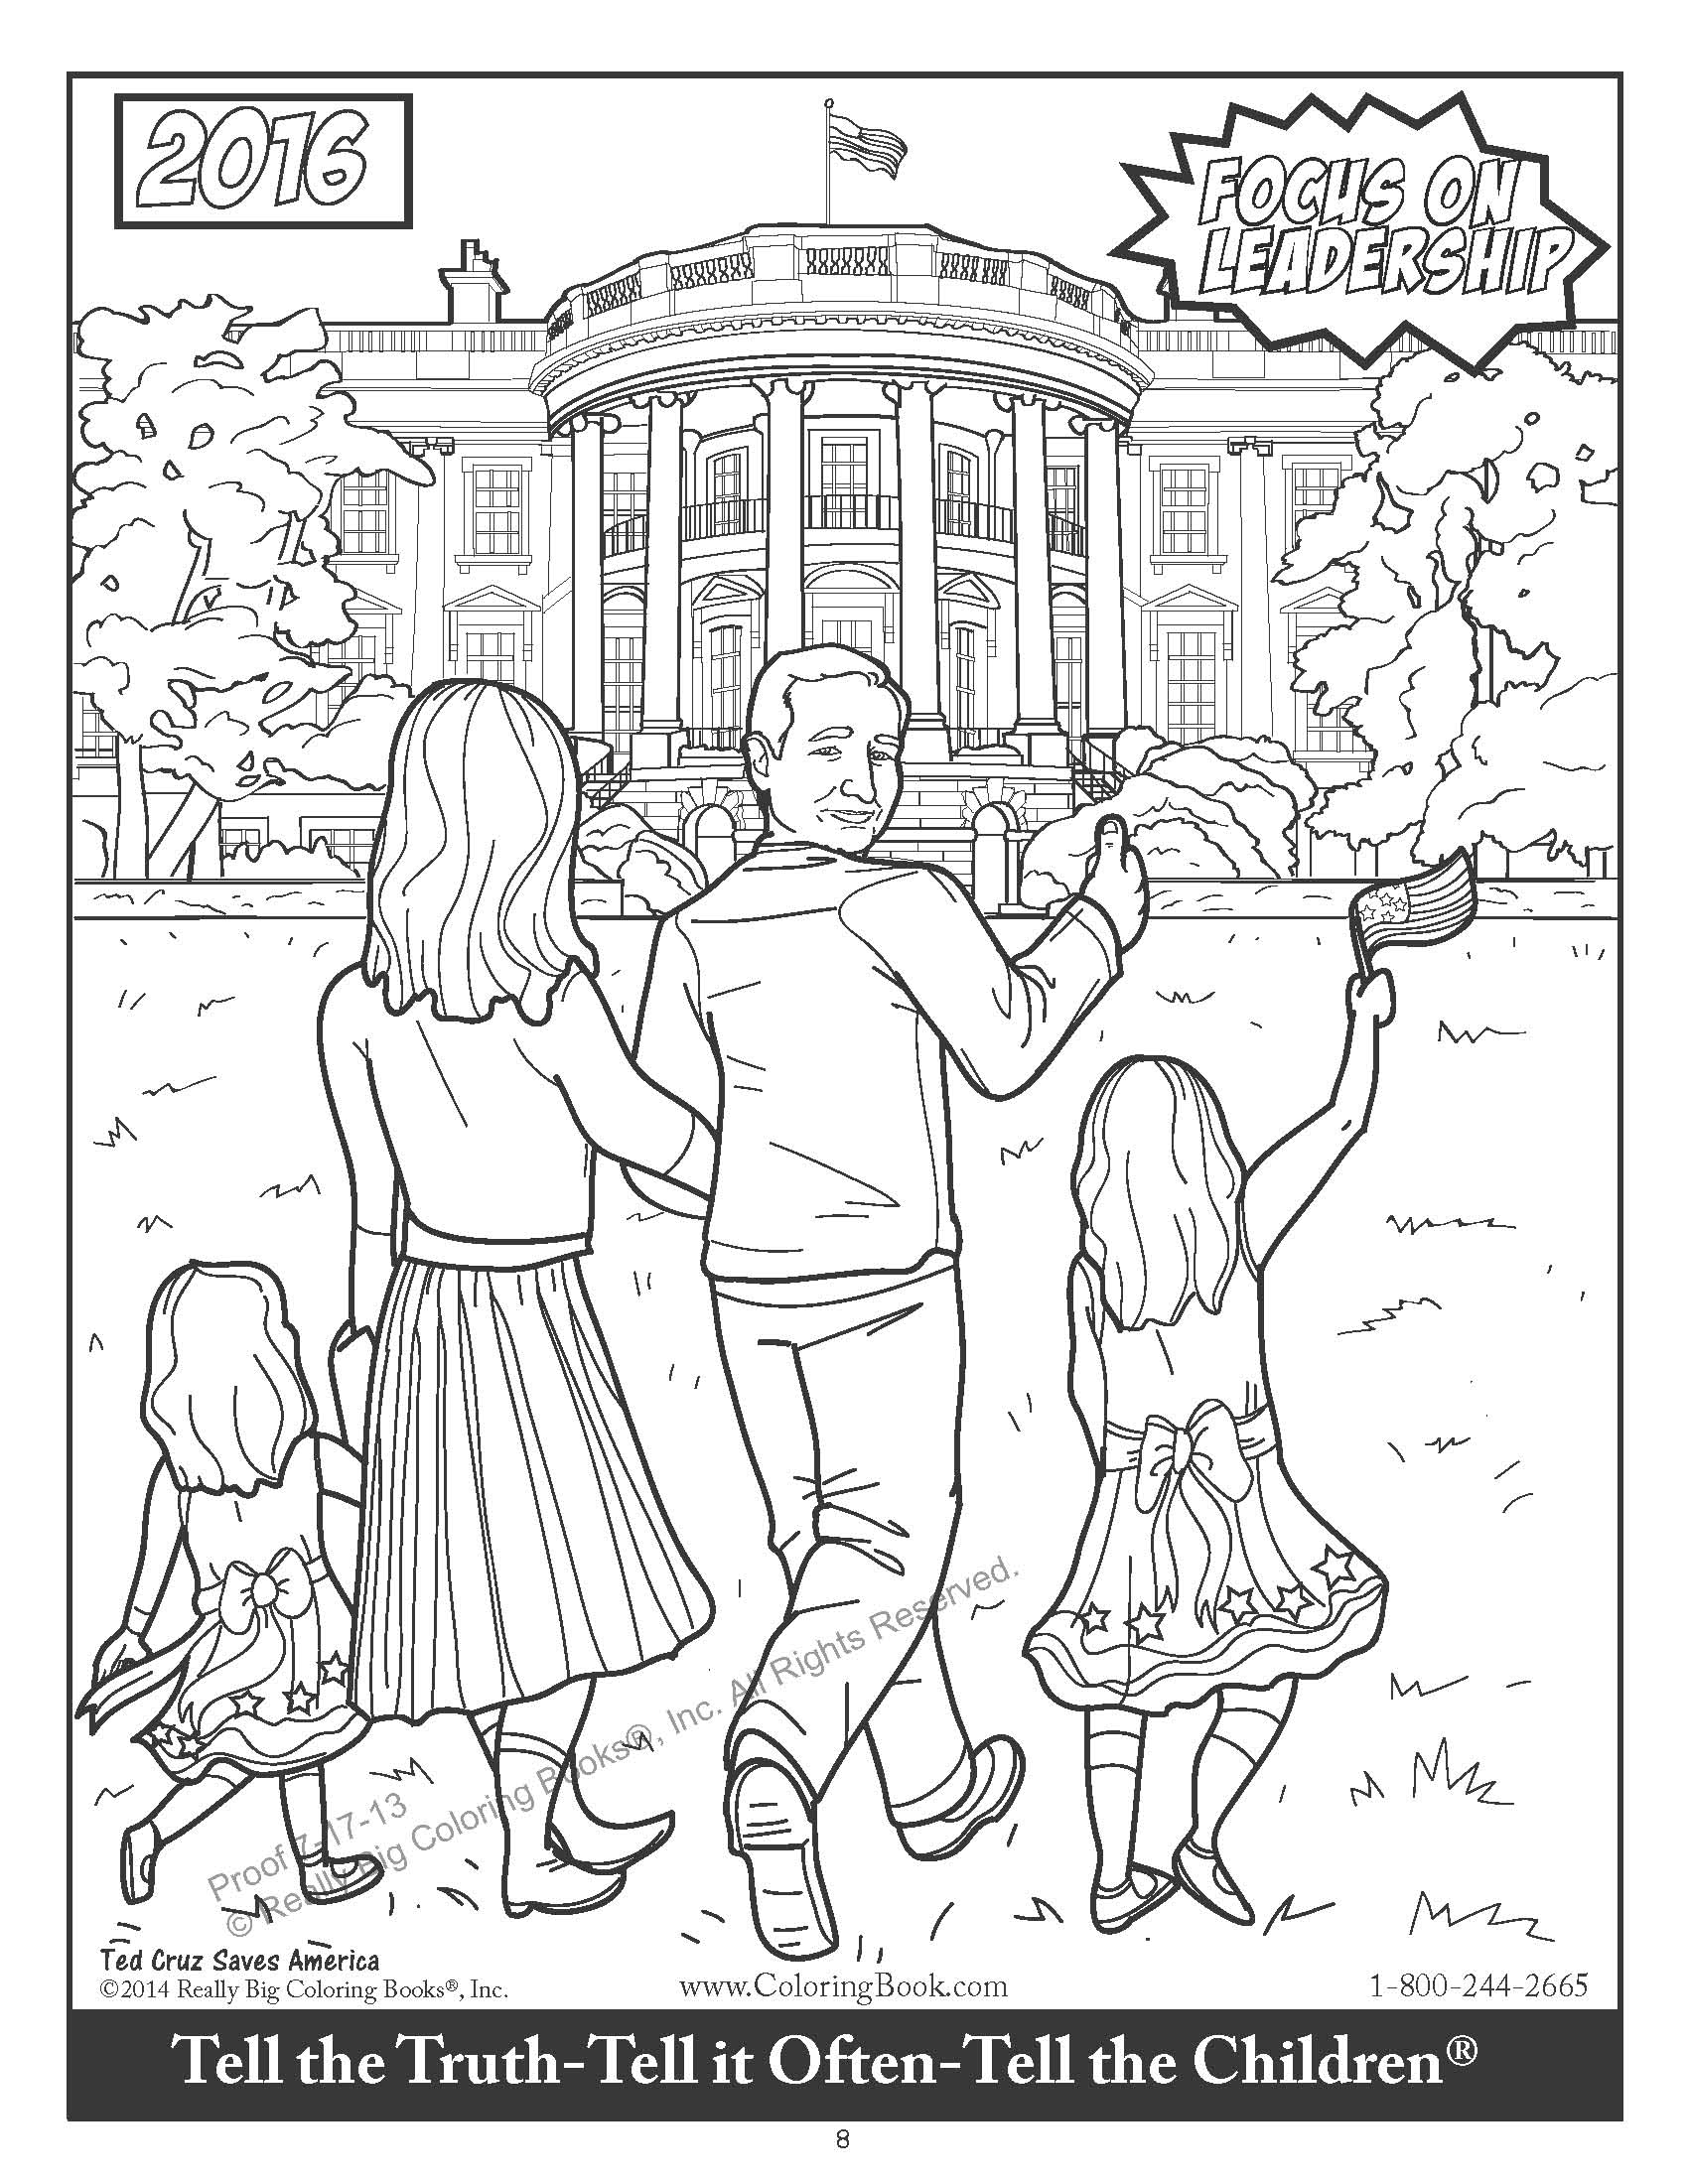 Ted Cruz Saves America Released By Coloringbook Com Back By Popular Demand